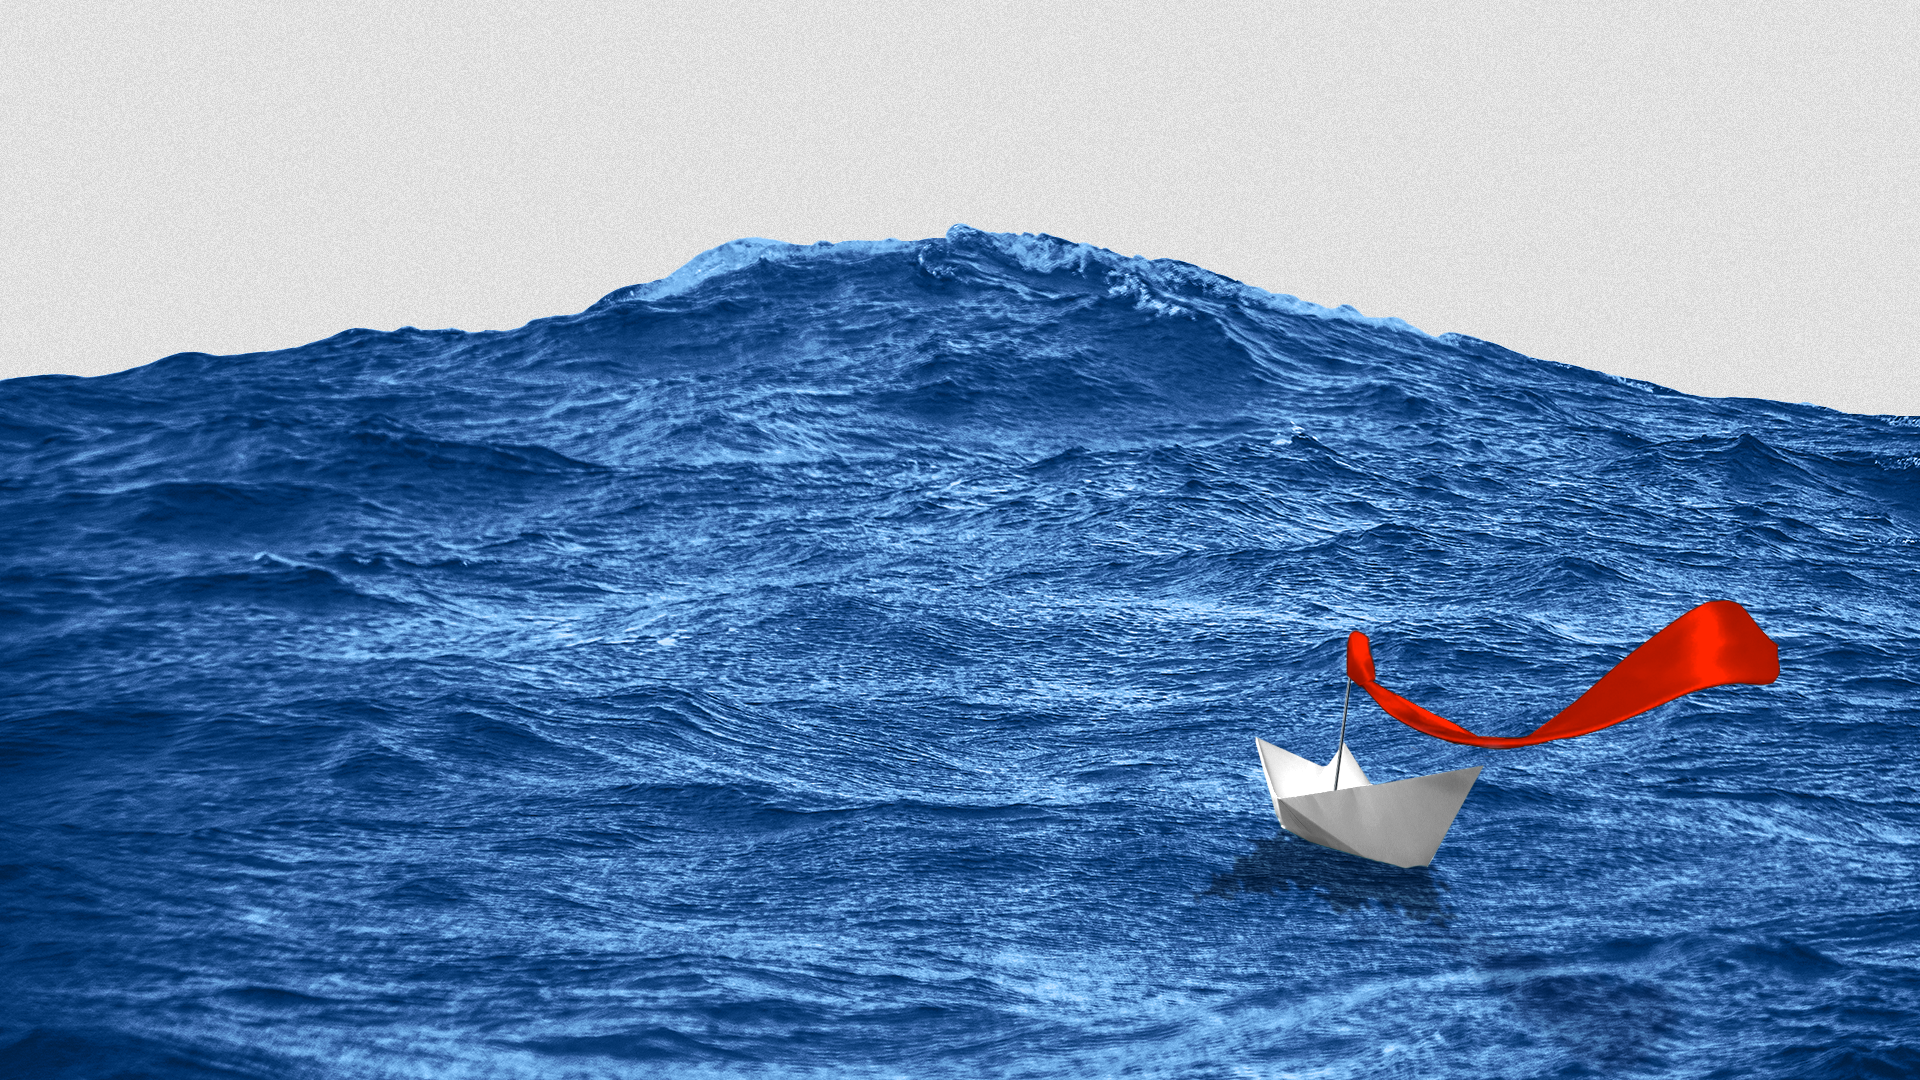 Illustration of a paper boat with a red tie as a flag going up against a giant blue wave